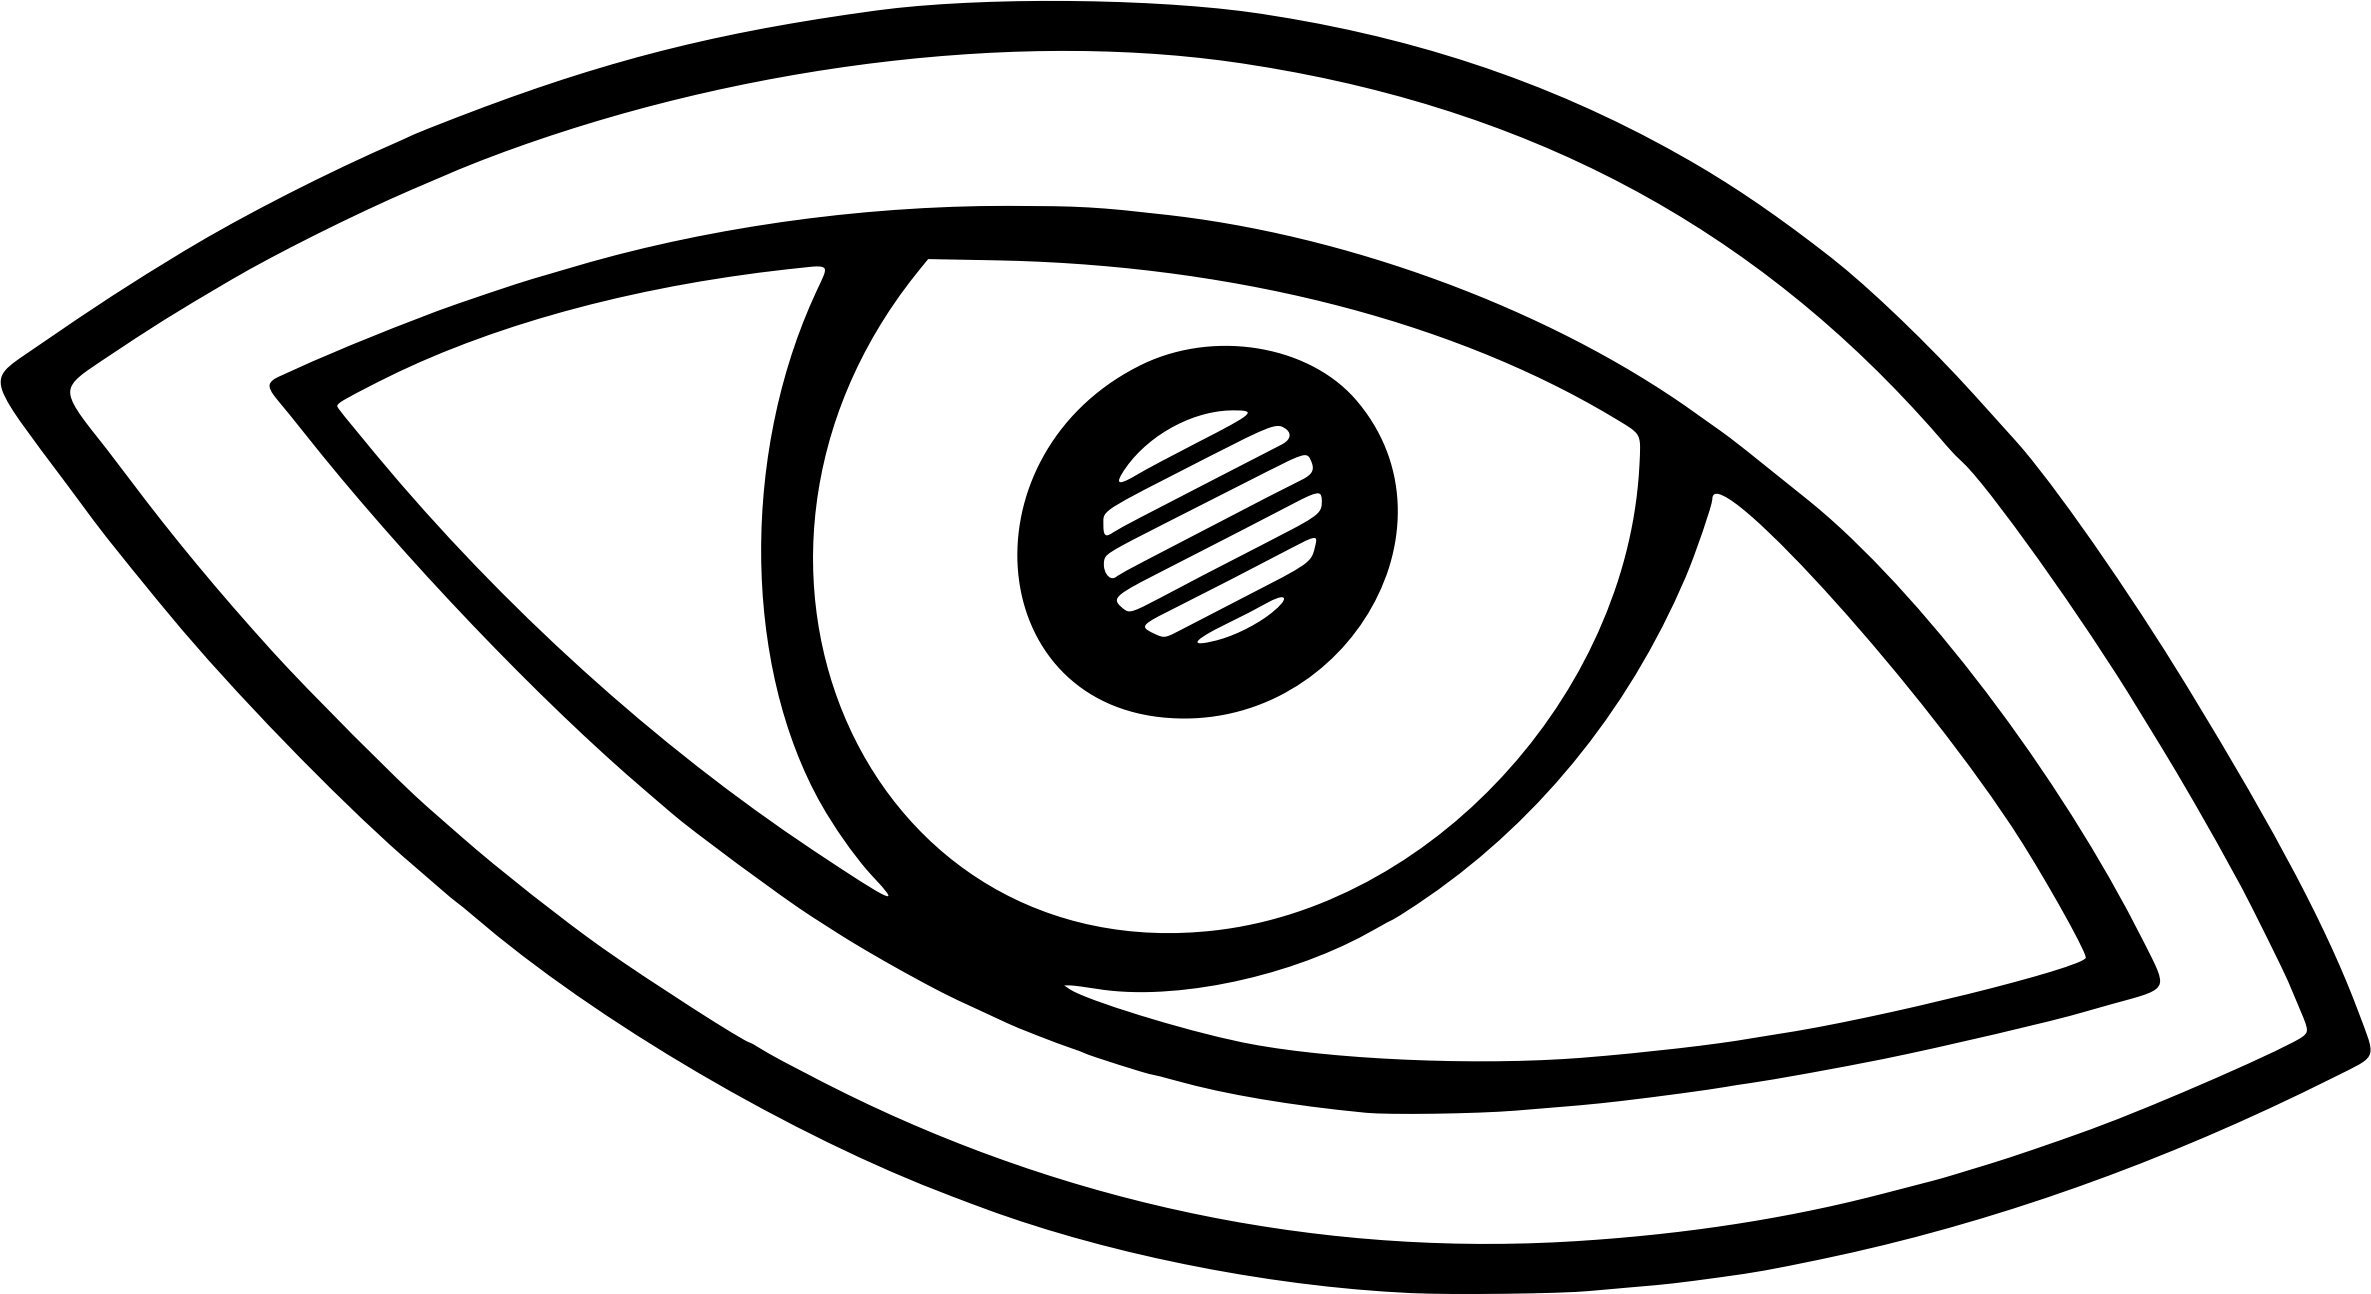 Clipart Eye Simple Clipart Eye Simple Transparent Free